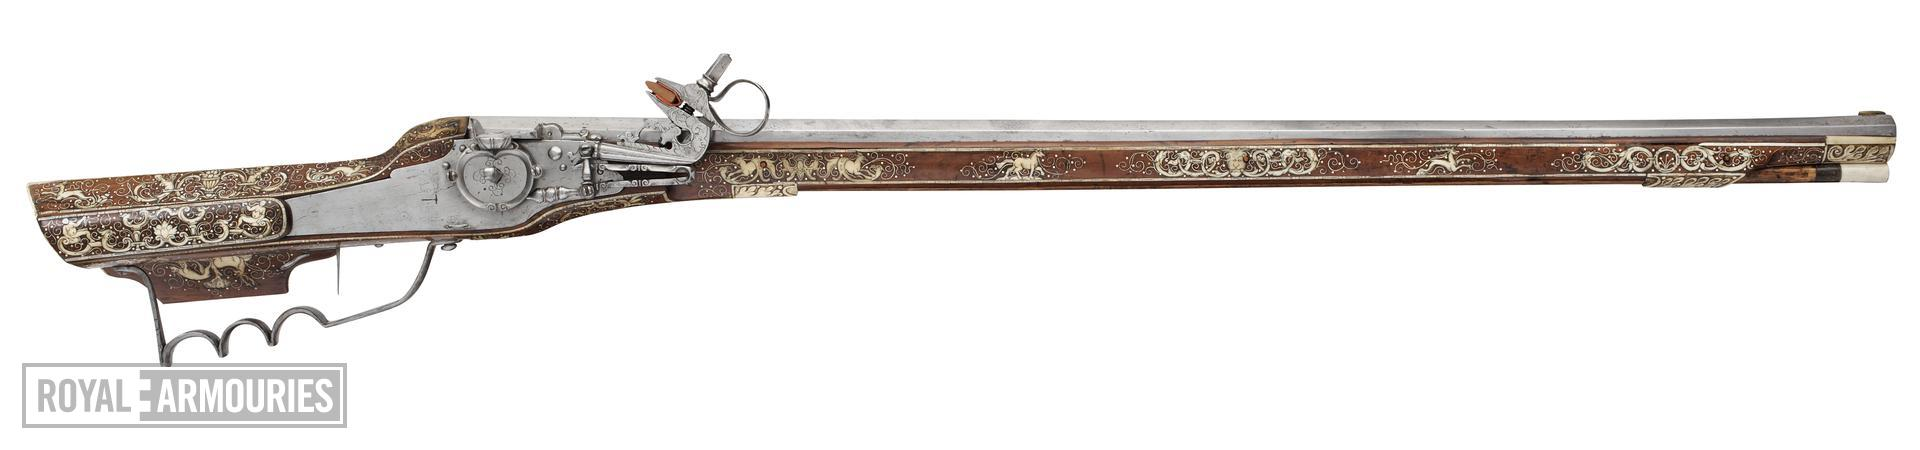 Wheellock muzzle-loading sporting rifle - Unknown